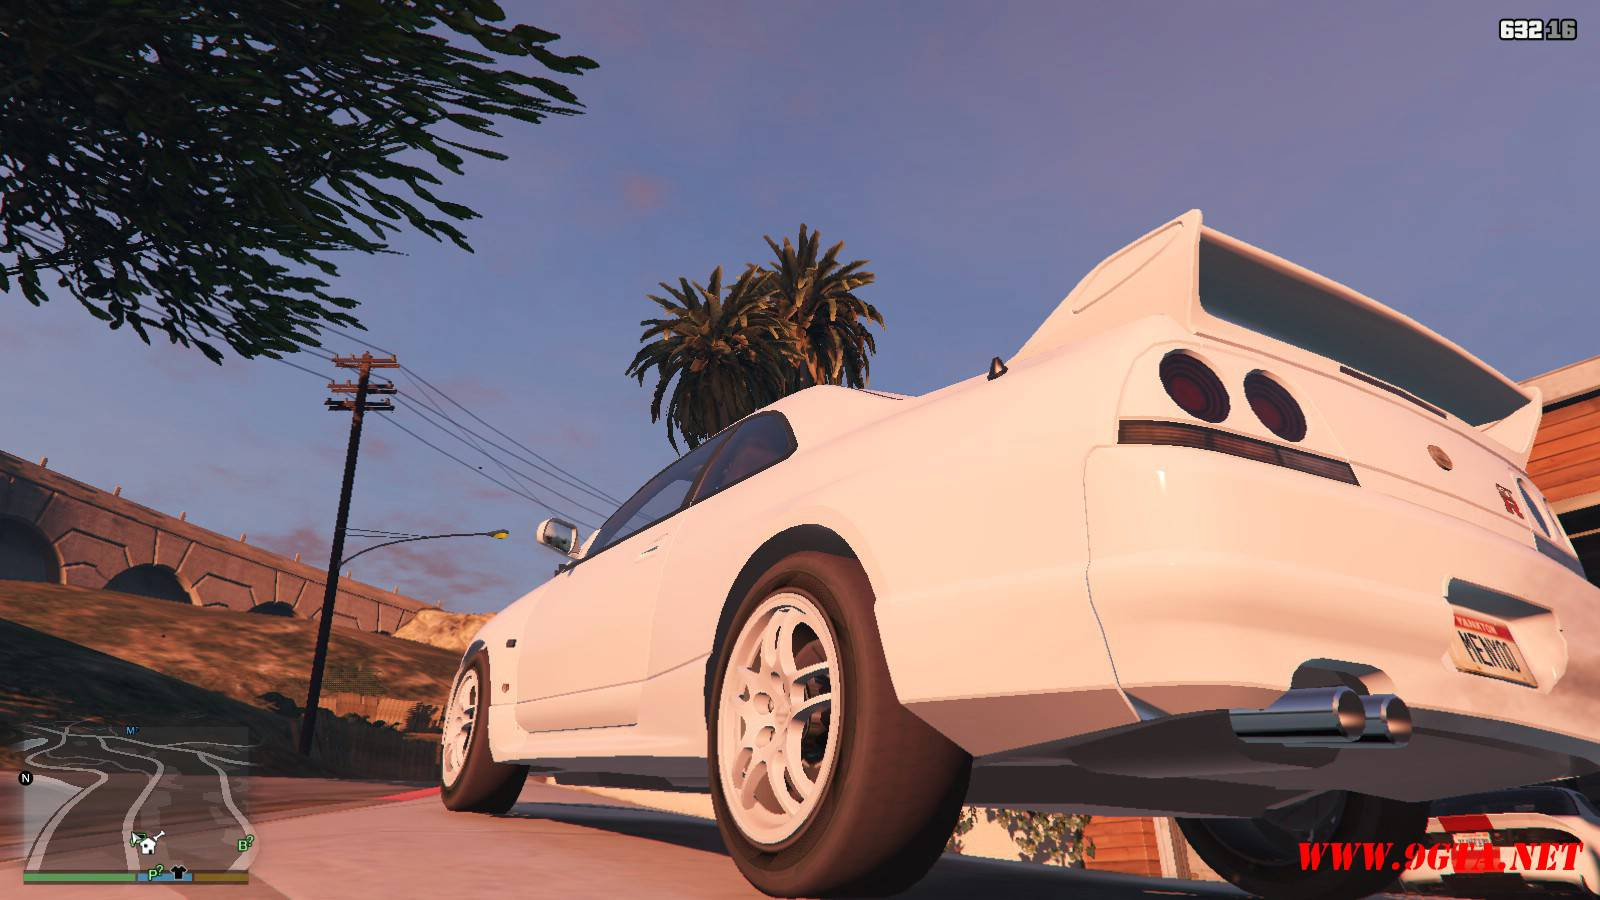 1996 Nissan Skyline GT-R R33 Mod For GTA5 (3)